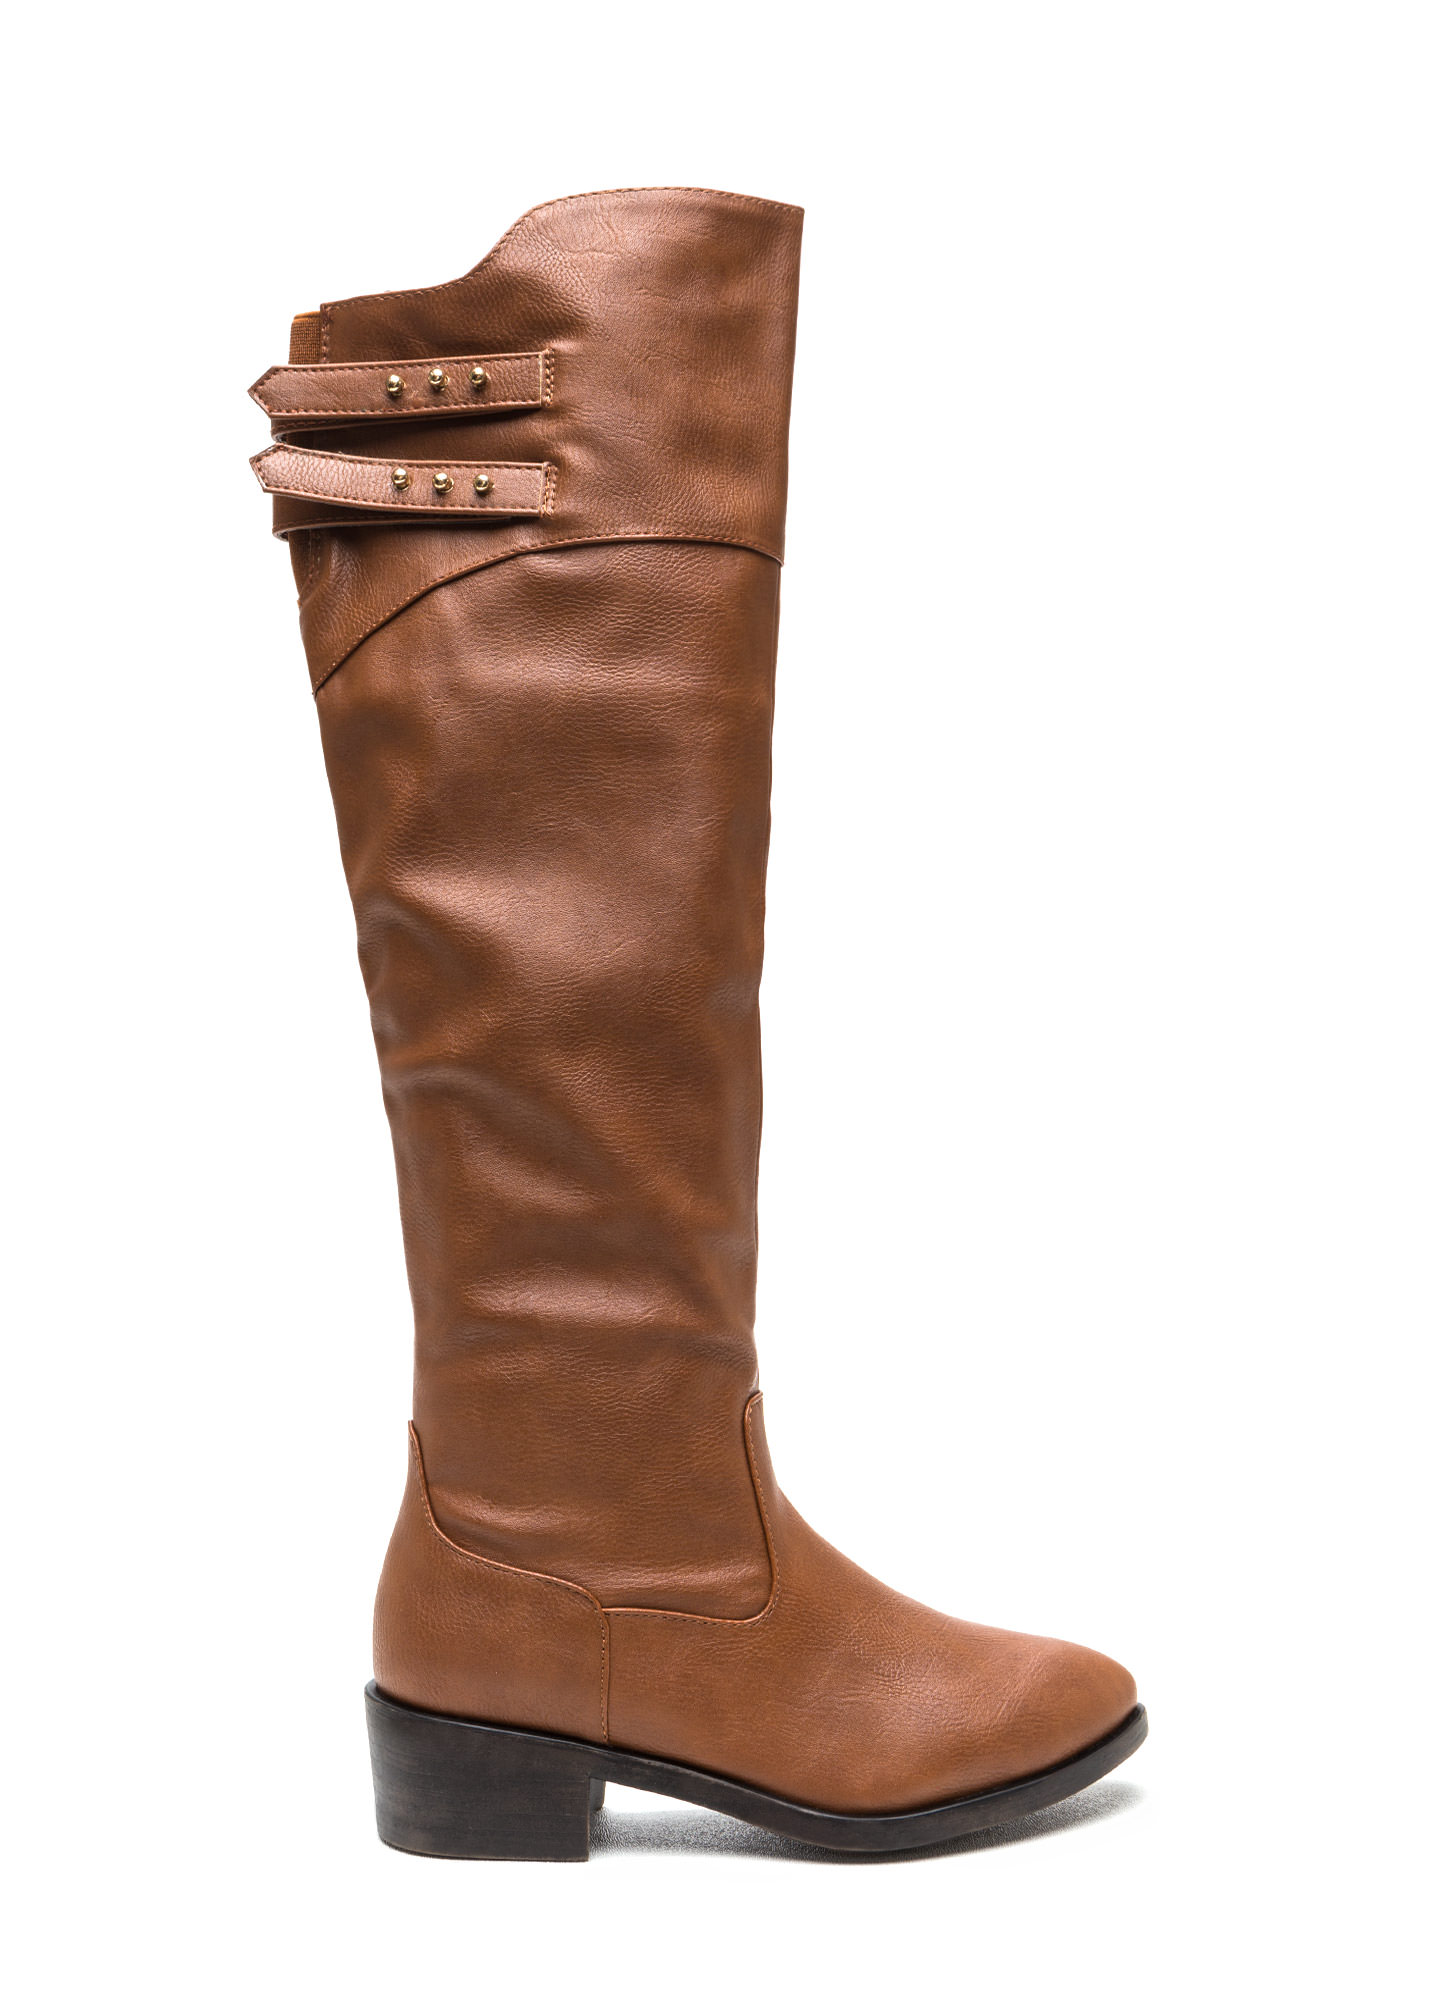 Double Trouble Strappy Boots CHESTNUT